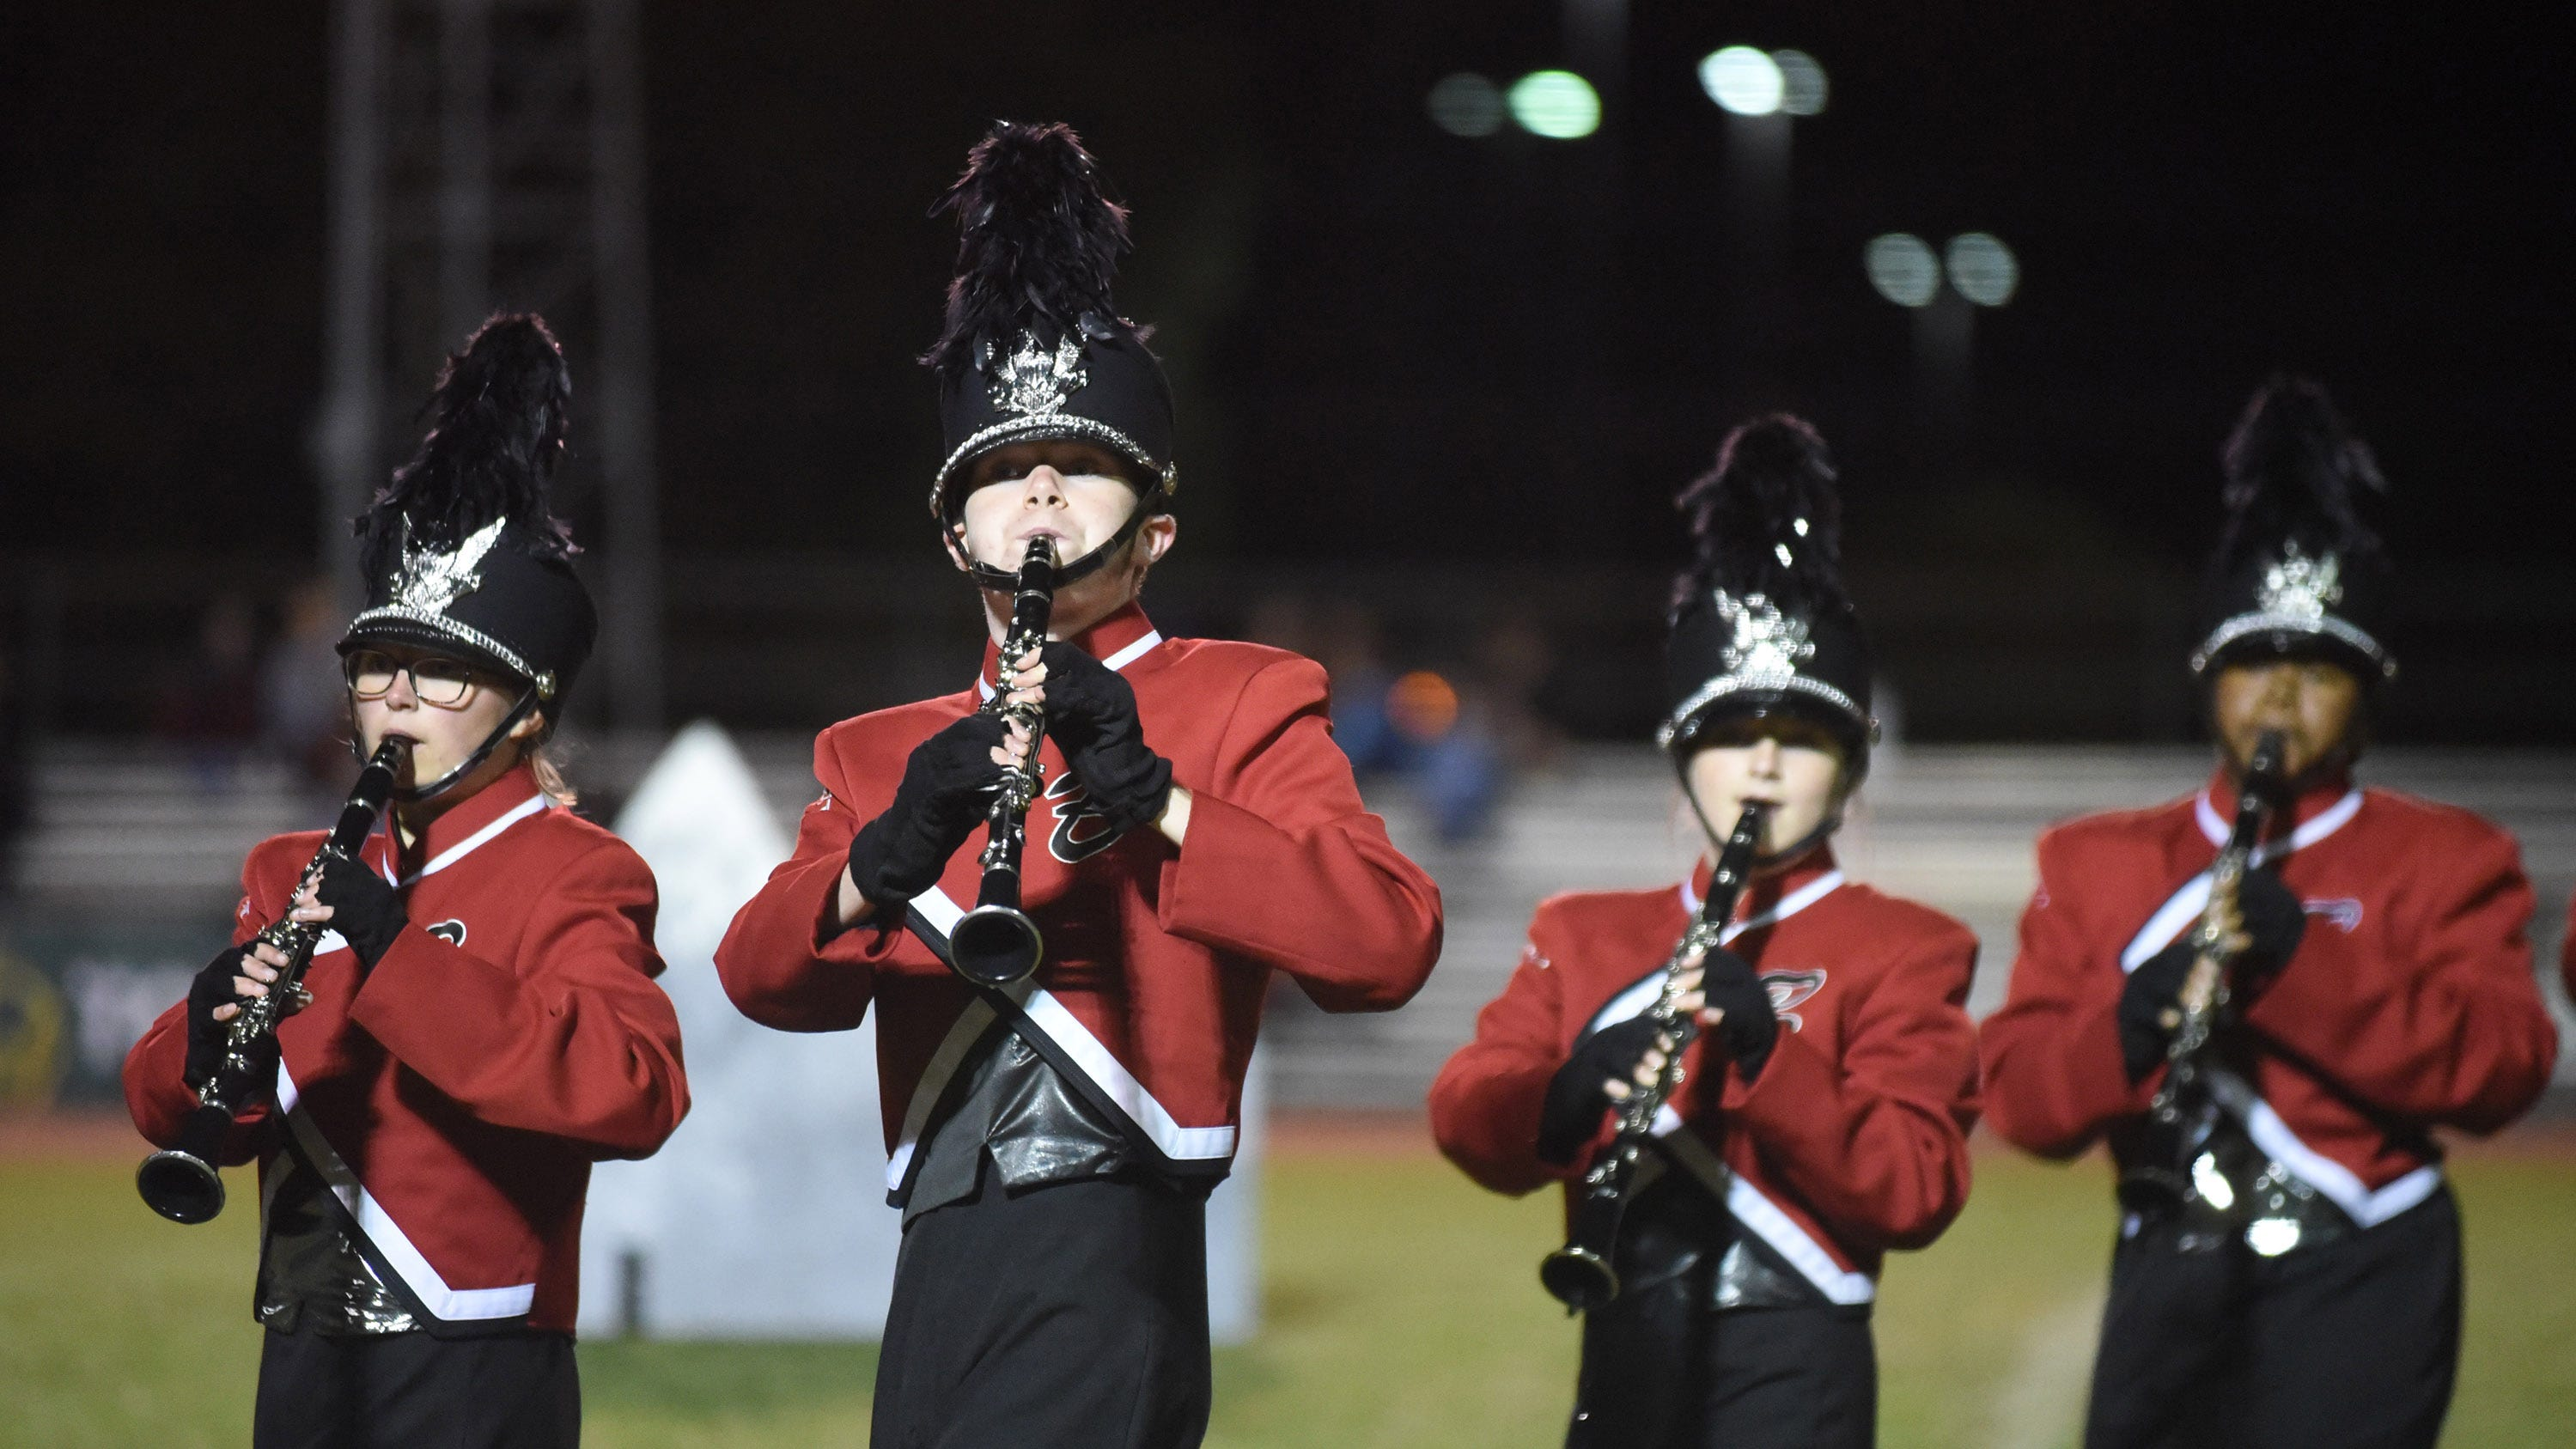 Members of the James M. Bennett High Band perform at the 2018 Delmarvacade of Bands at Wicomico County Stadium Saturday night in Salisbury.